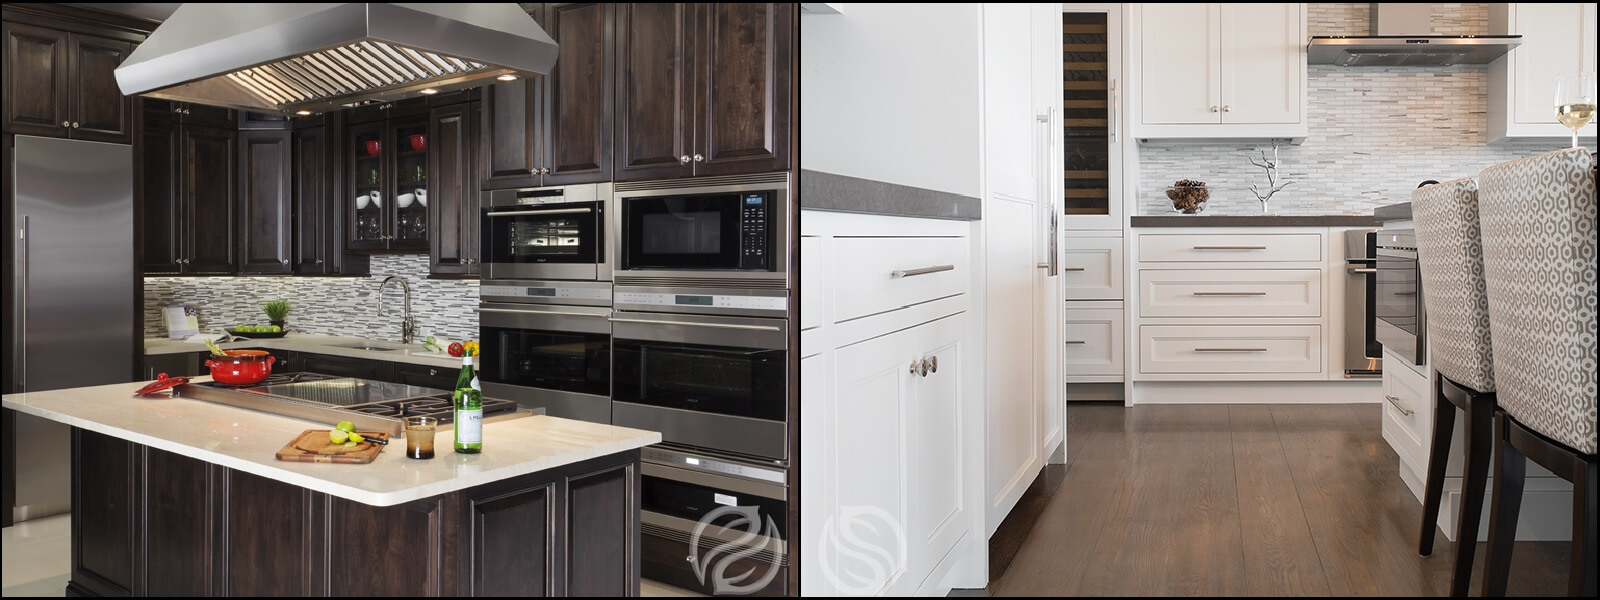 inset door style kitchen cabinets in Scottsdale